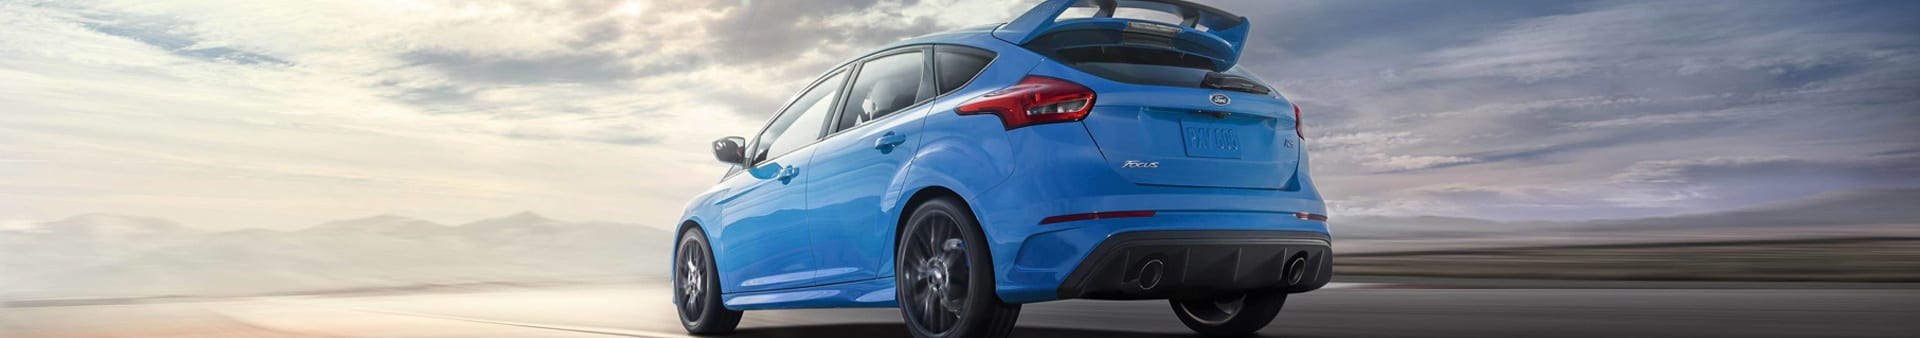 Ford_Focus_RS_Exterior